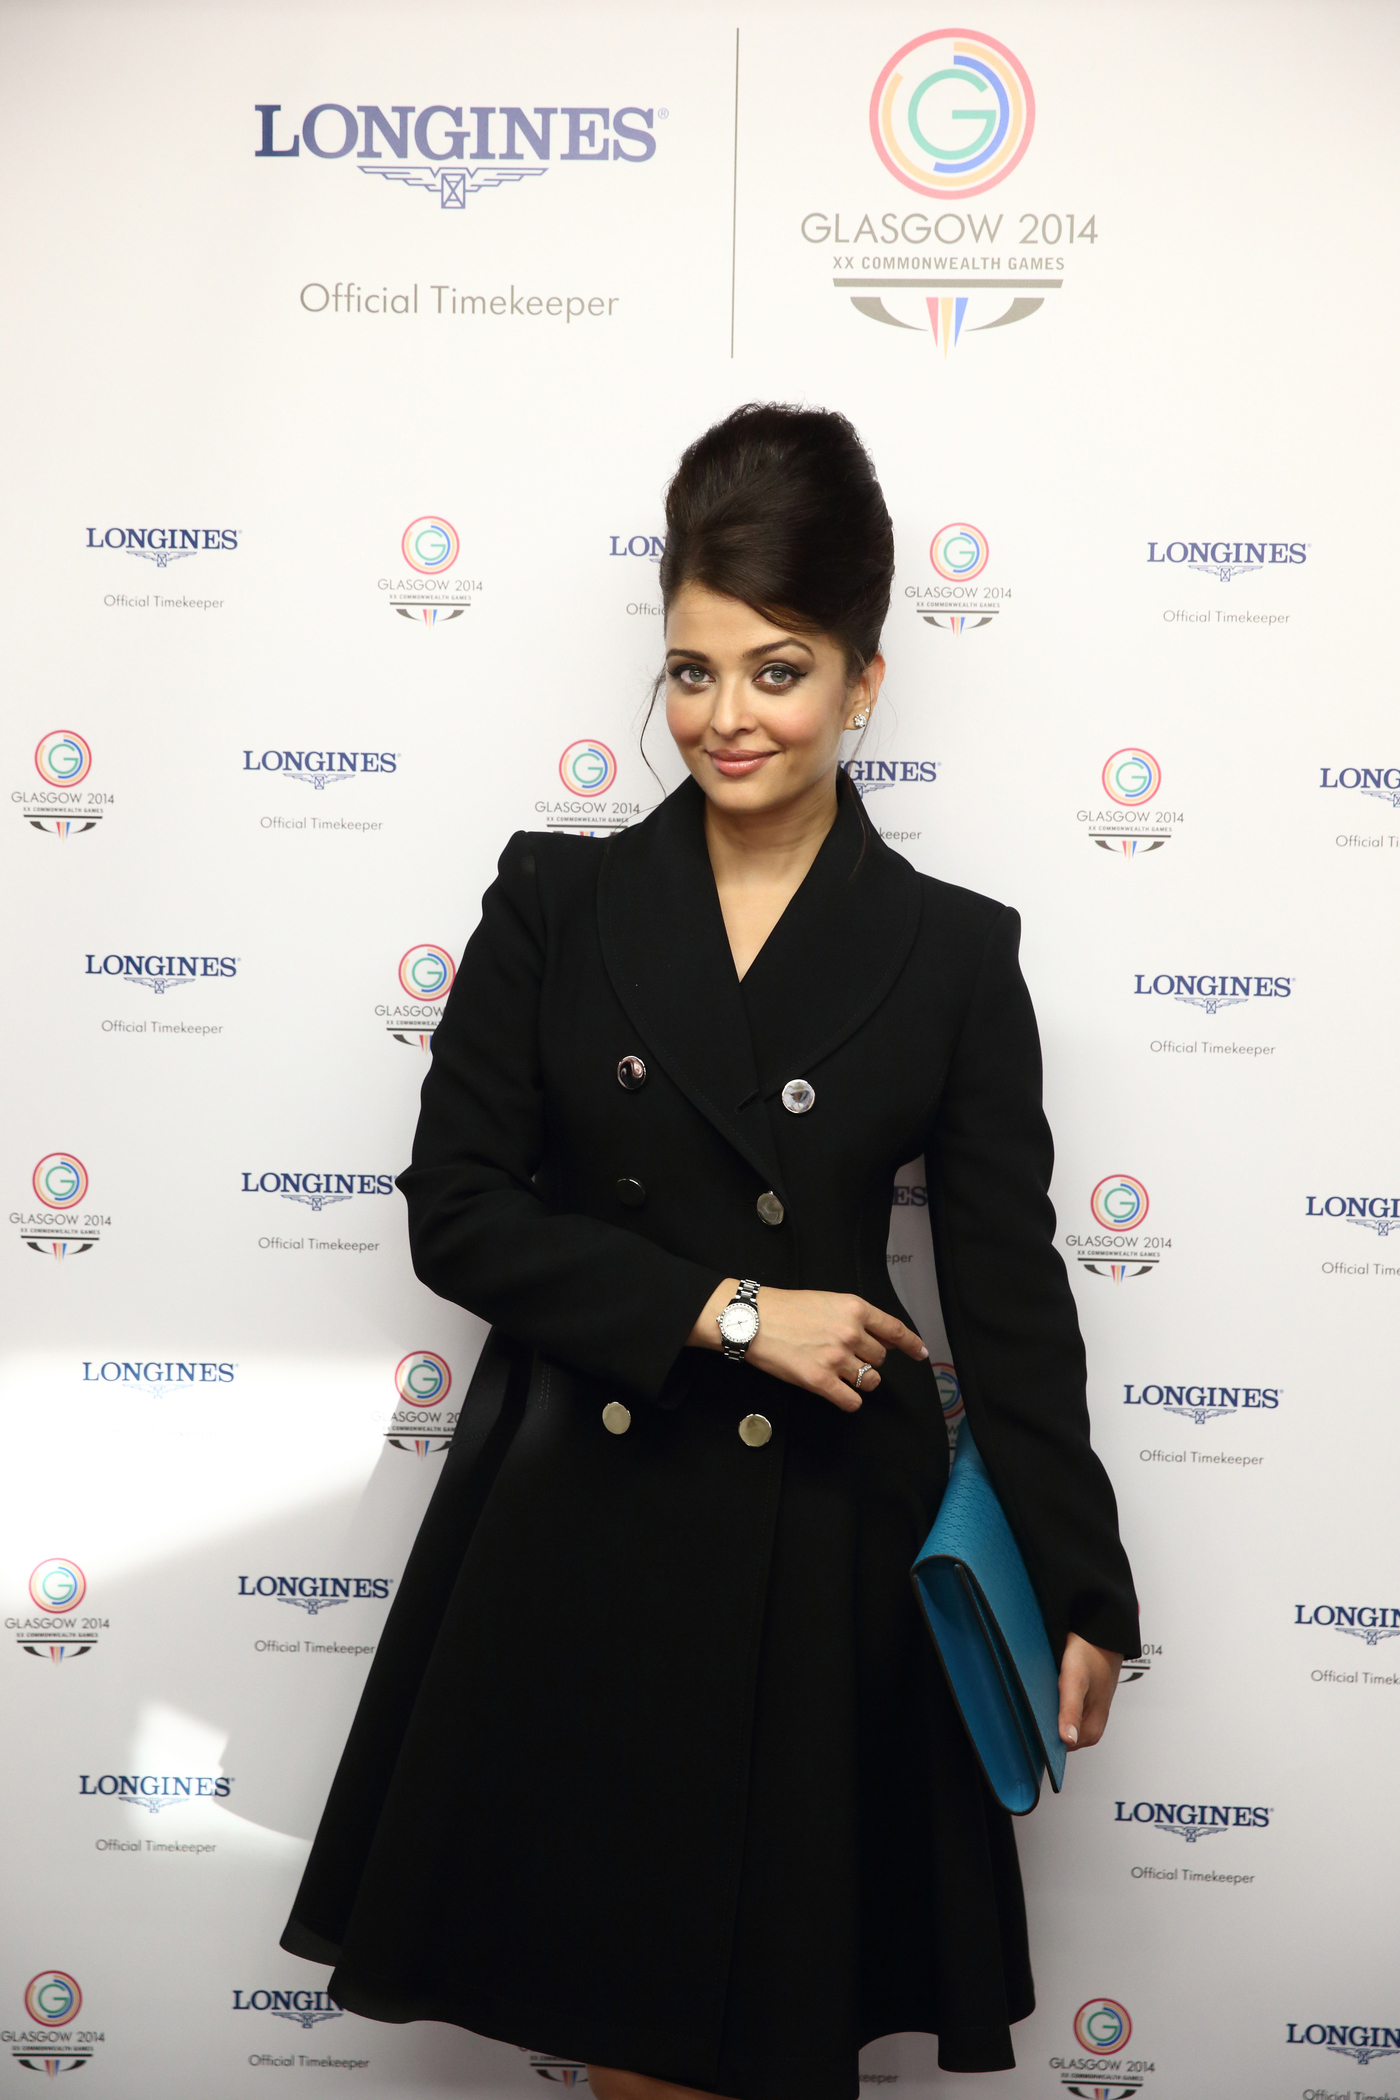 Longines Commonwealth Games Event: Longines Ambassador of Elegance Aishwarya Rai at the Opening Ceremony of Glasgow 2014, the XX Commonwealth Games 2